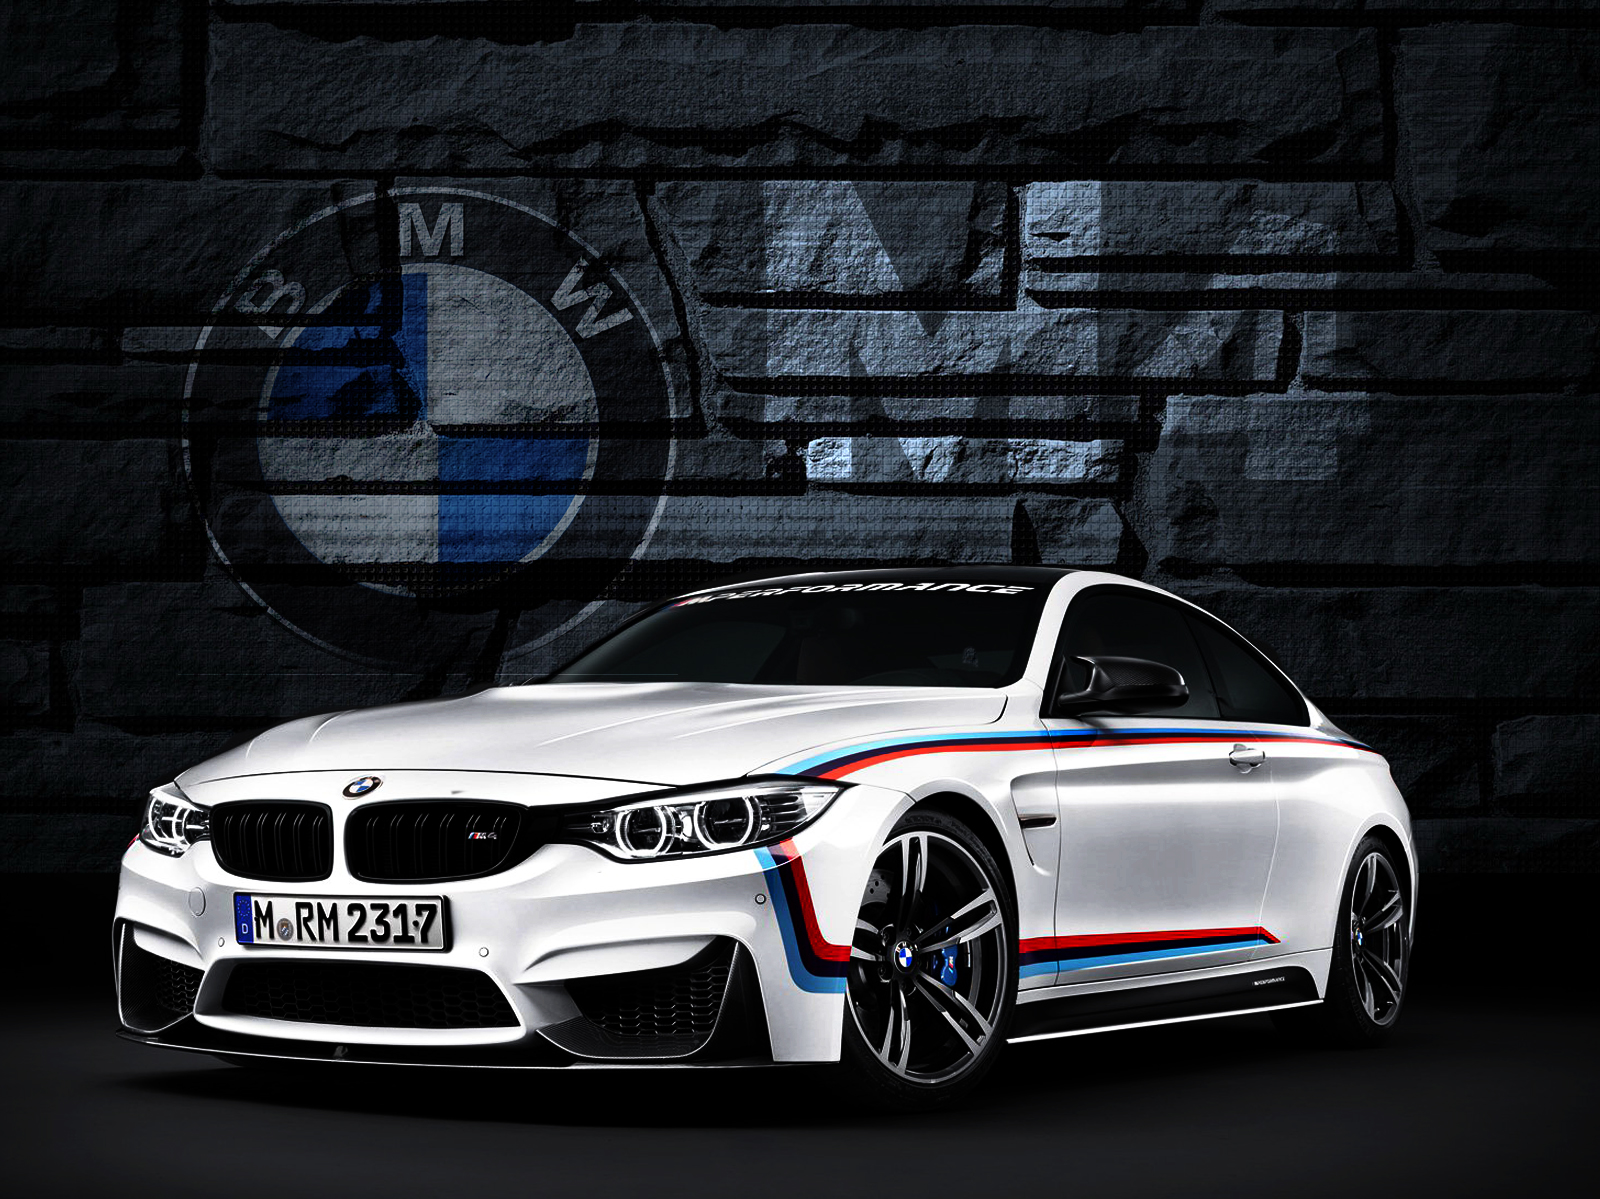 Gallery BMW M4 Wallpaper HD Dekstop 2016